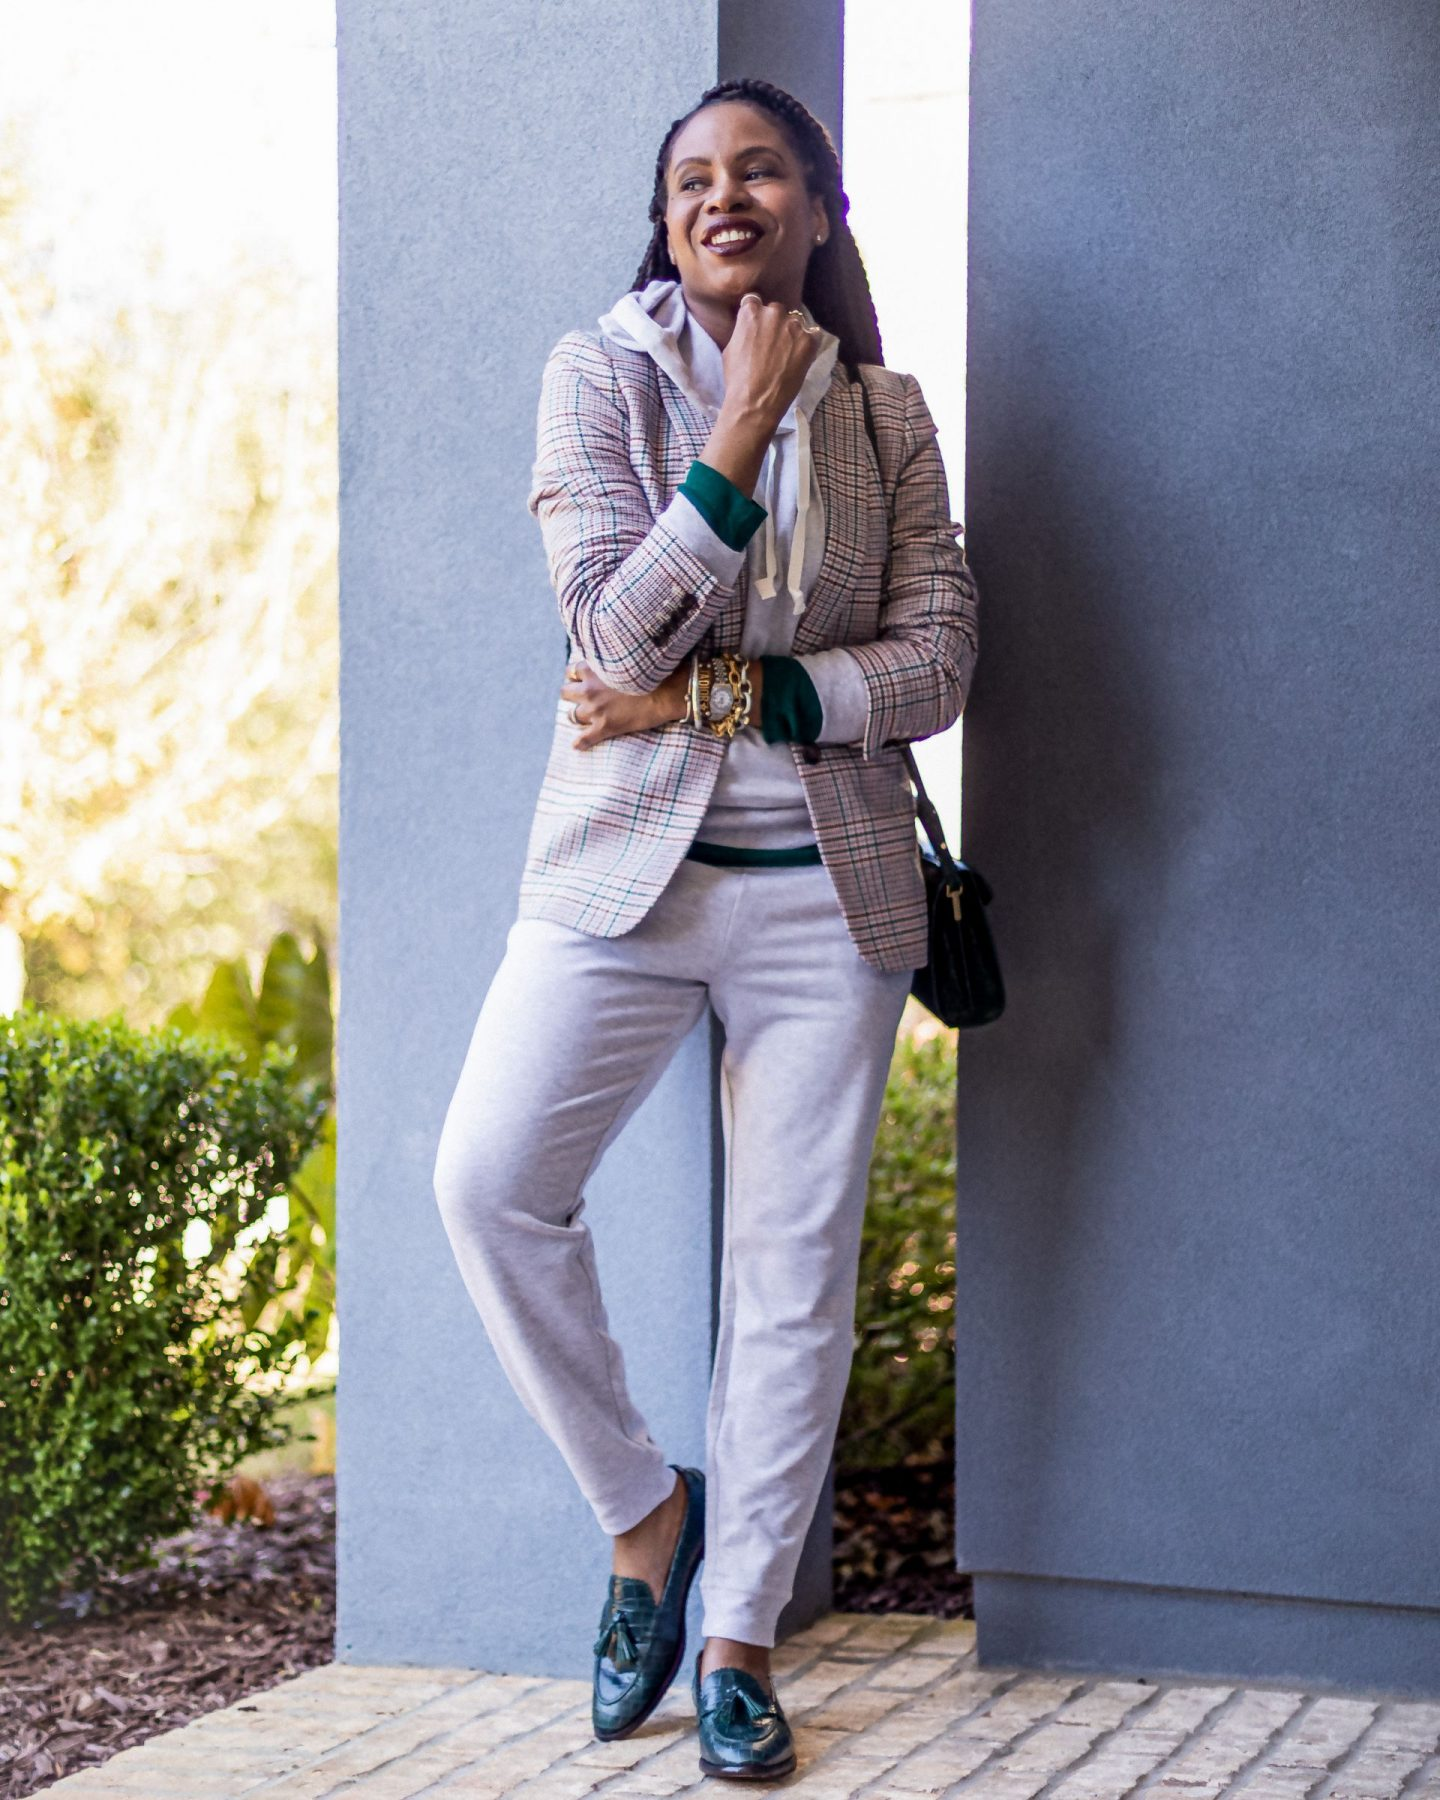 plaid blazer, green plaid blazer, how to style a grey hoodie and joggers, green tee, j.crew, how to look casual-chic, green loafers, embossed loafers, how to style green shoes, atlanta blogger wearing fall pieces from j.crew to work from home, fall staples, what to wear for fall, fall outfit ideas